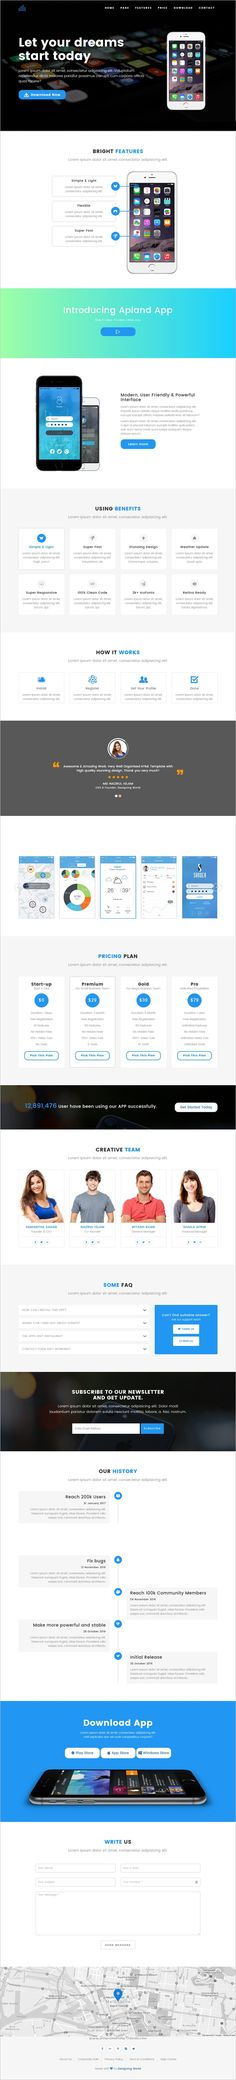 Apland is very beautiful, creative and light 6in1 #bootstrap template for #app landing page websites download now➩ https://wrapbootstrap.com/theme/apland-app-landing-page-template-WB0F61H5J?ref=datasata